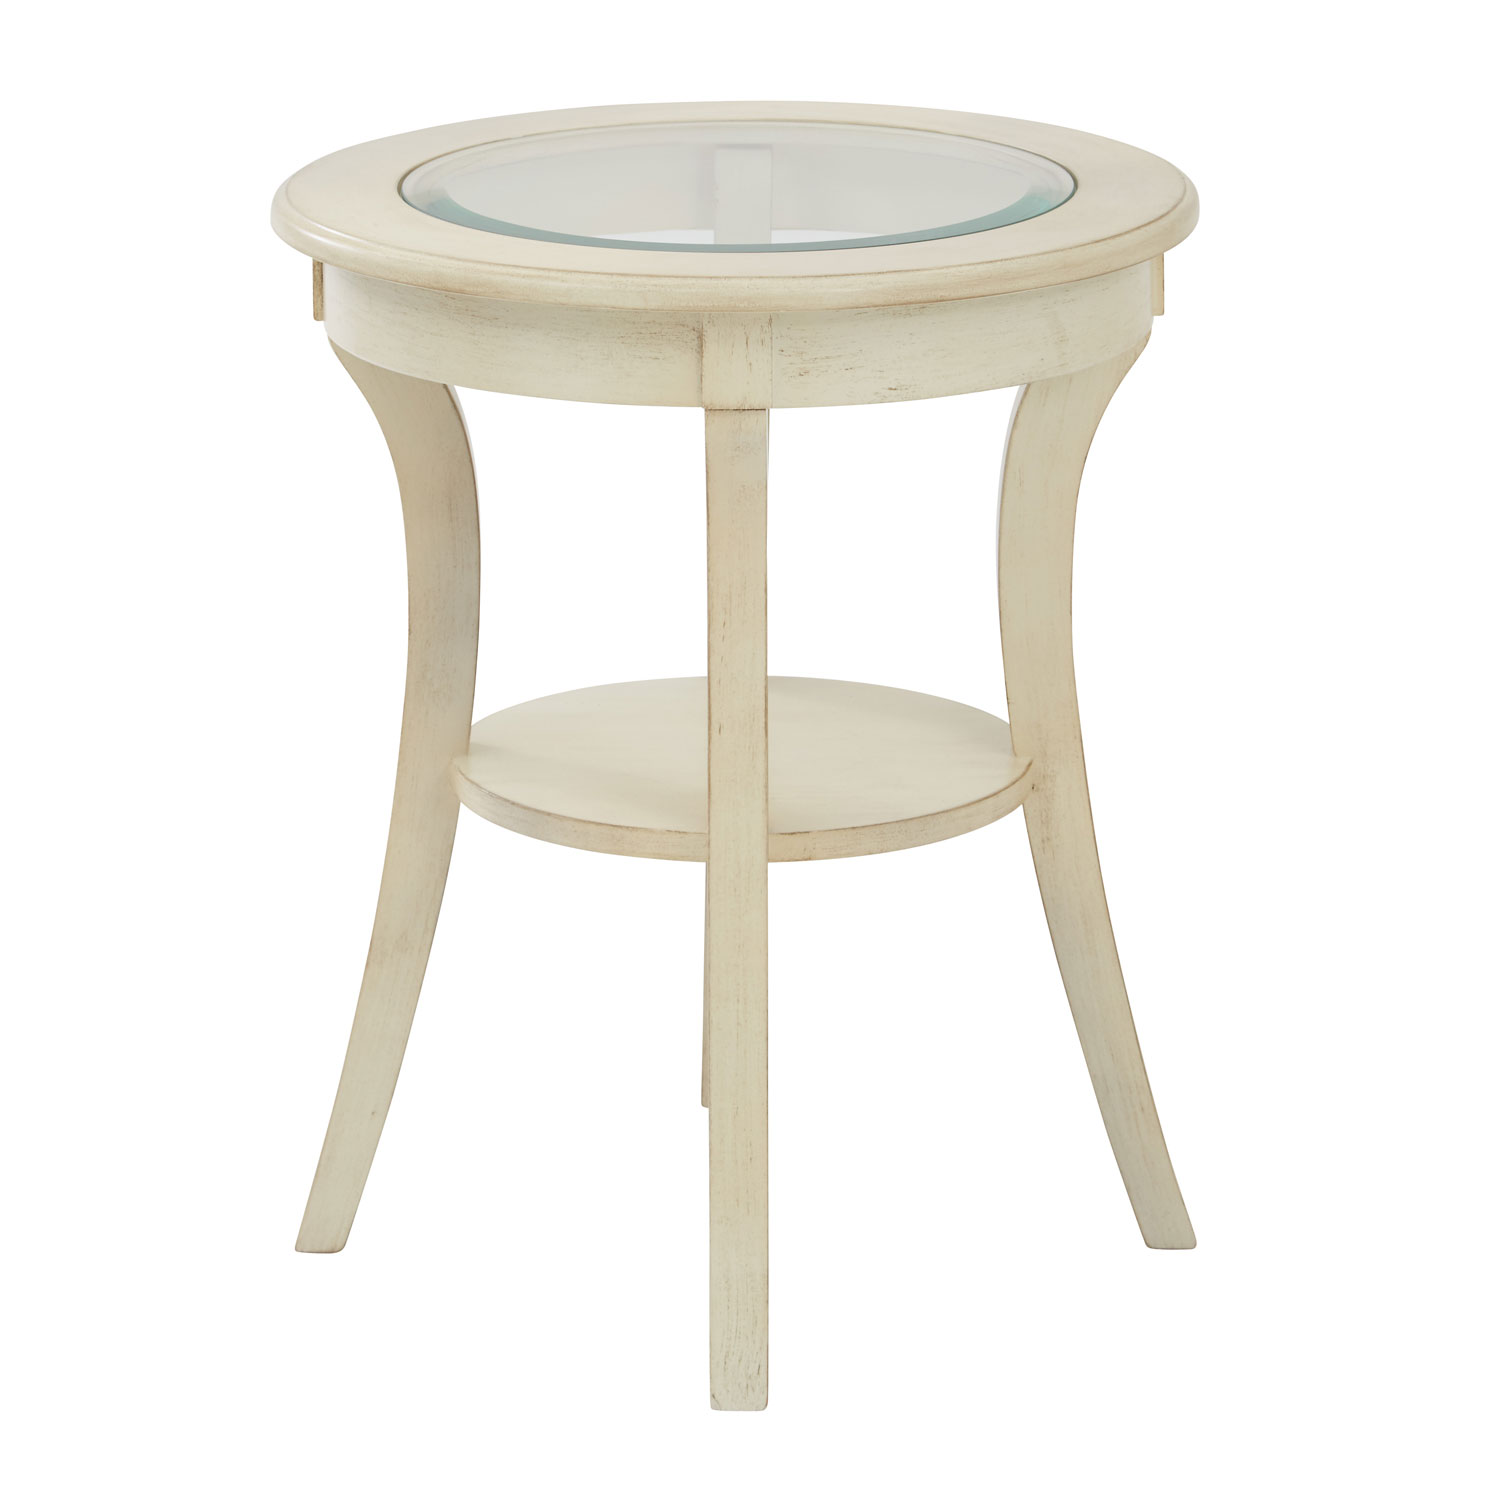 office star products harper antique white round accent table hover zoom decorative tablecloths small side for nursery pier vases gold rimmed coffee farmhouse style dining room